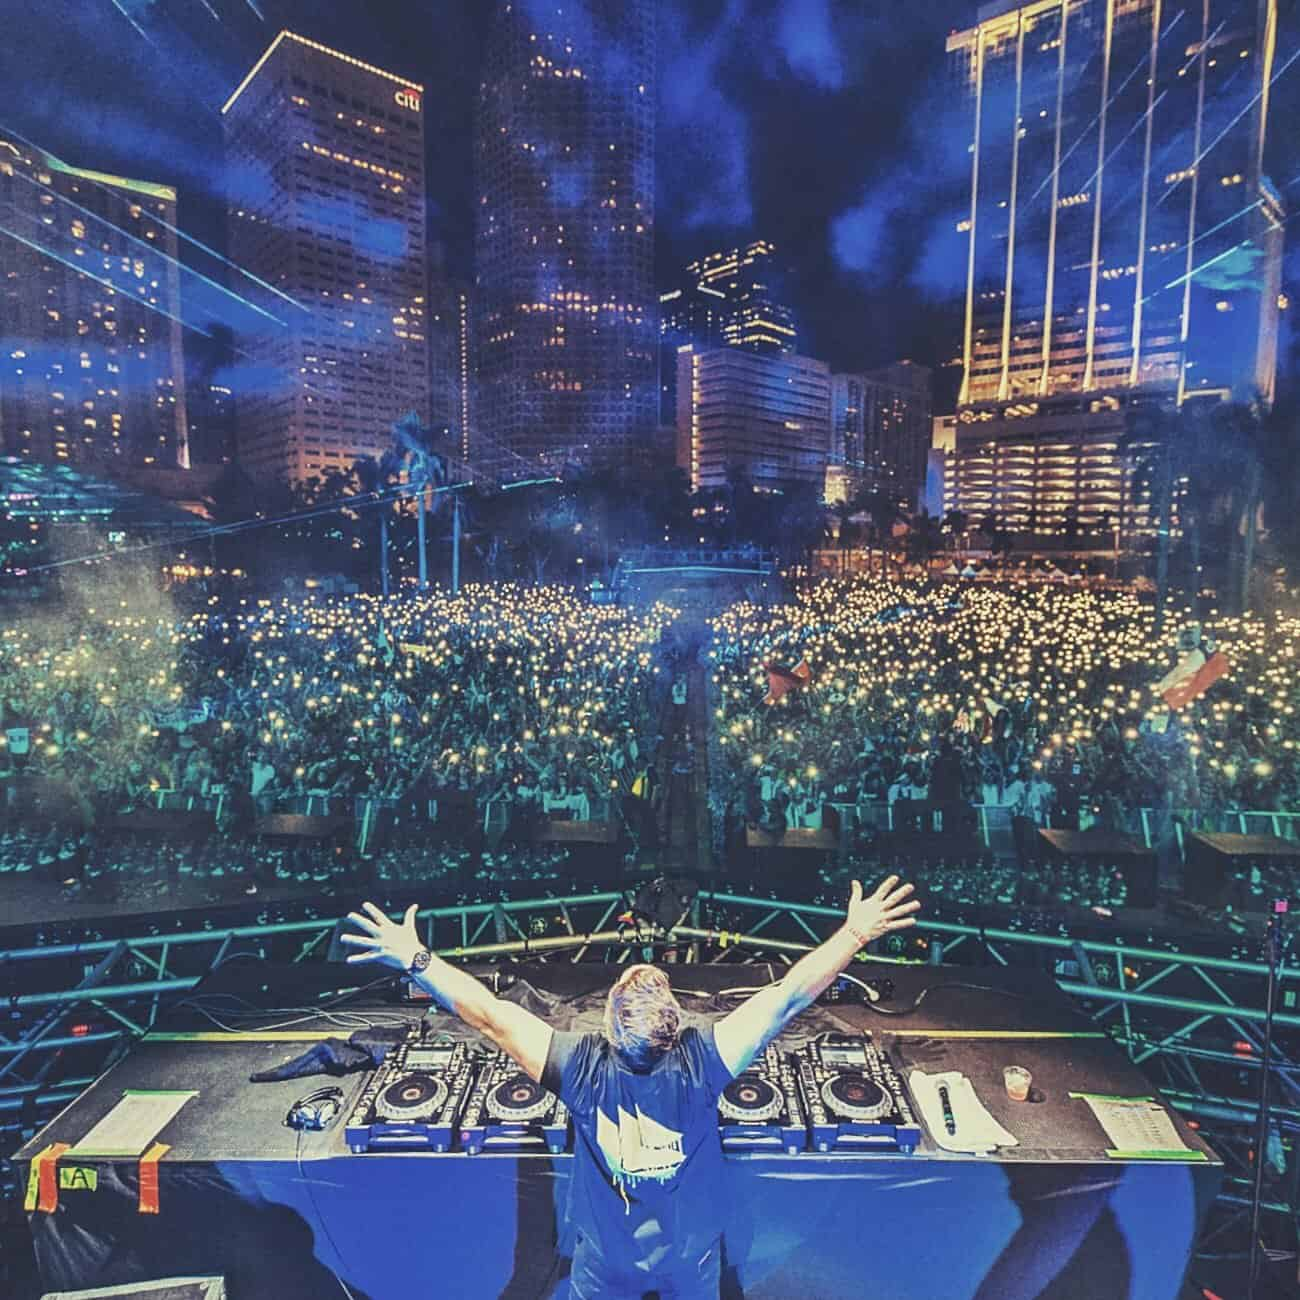 Hardwell headlines ULTRA 2018 in spectacular fashion with exclusives and premieres in abundance